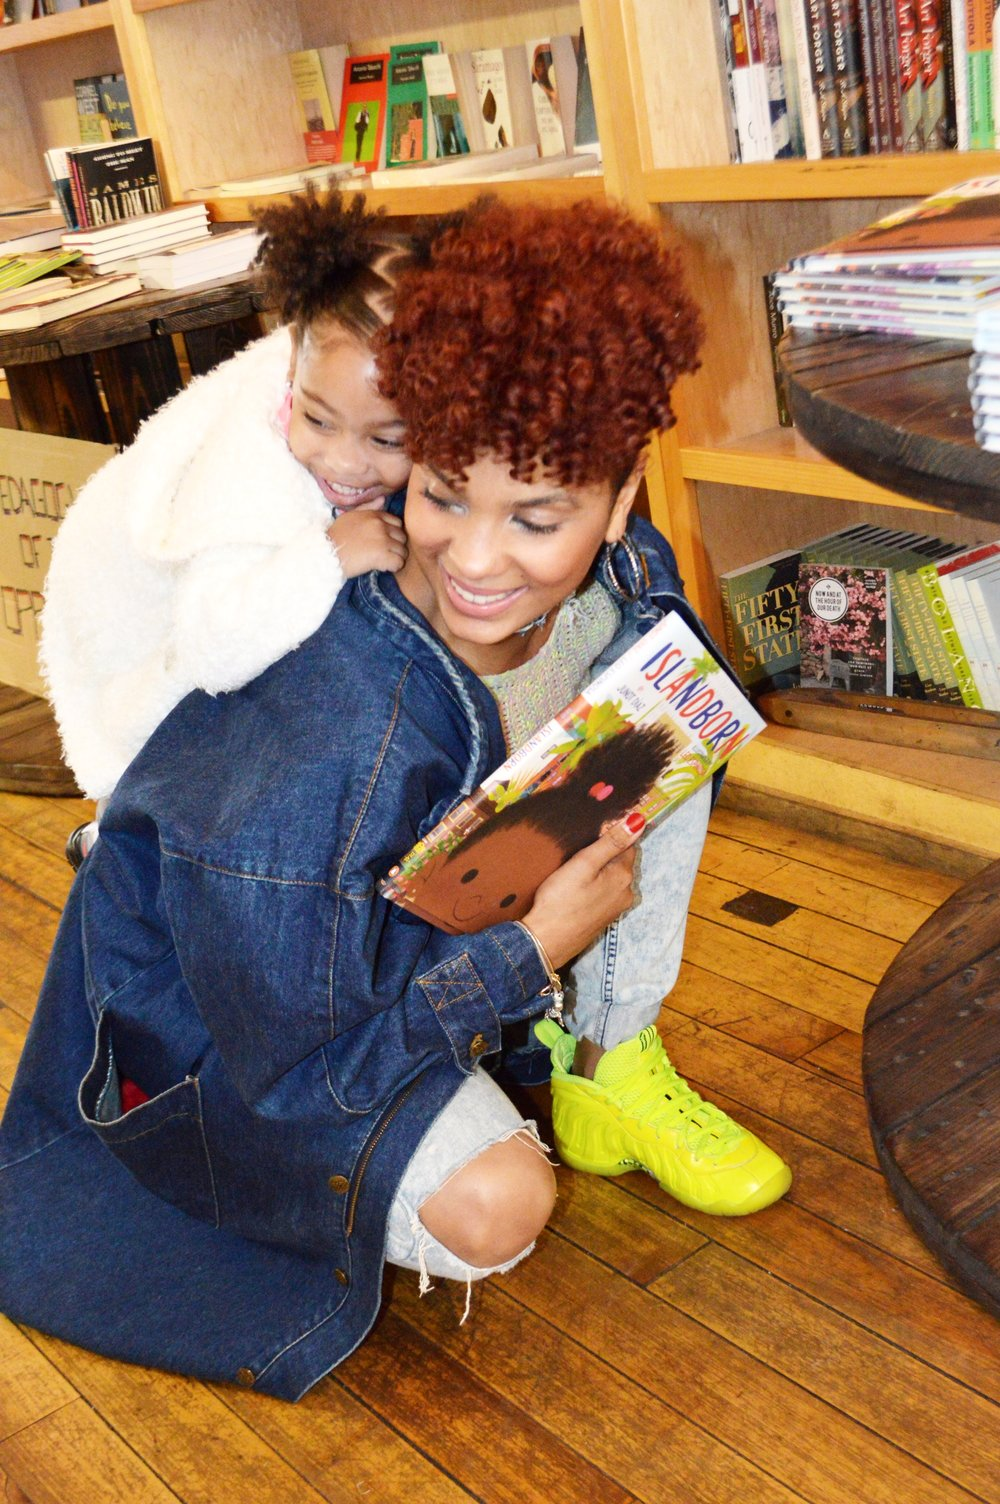 EL TALLER   has become synonymous with the atmosphere of family, good vibes + all around positivity. As a bookstore cafe, it a great place to enjoy good food + read. Model:  Stephanie M.  + her beautiful daughter